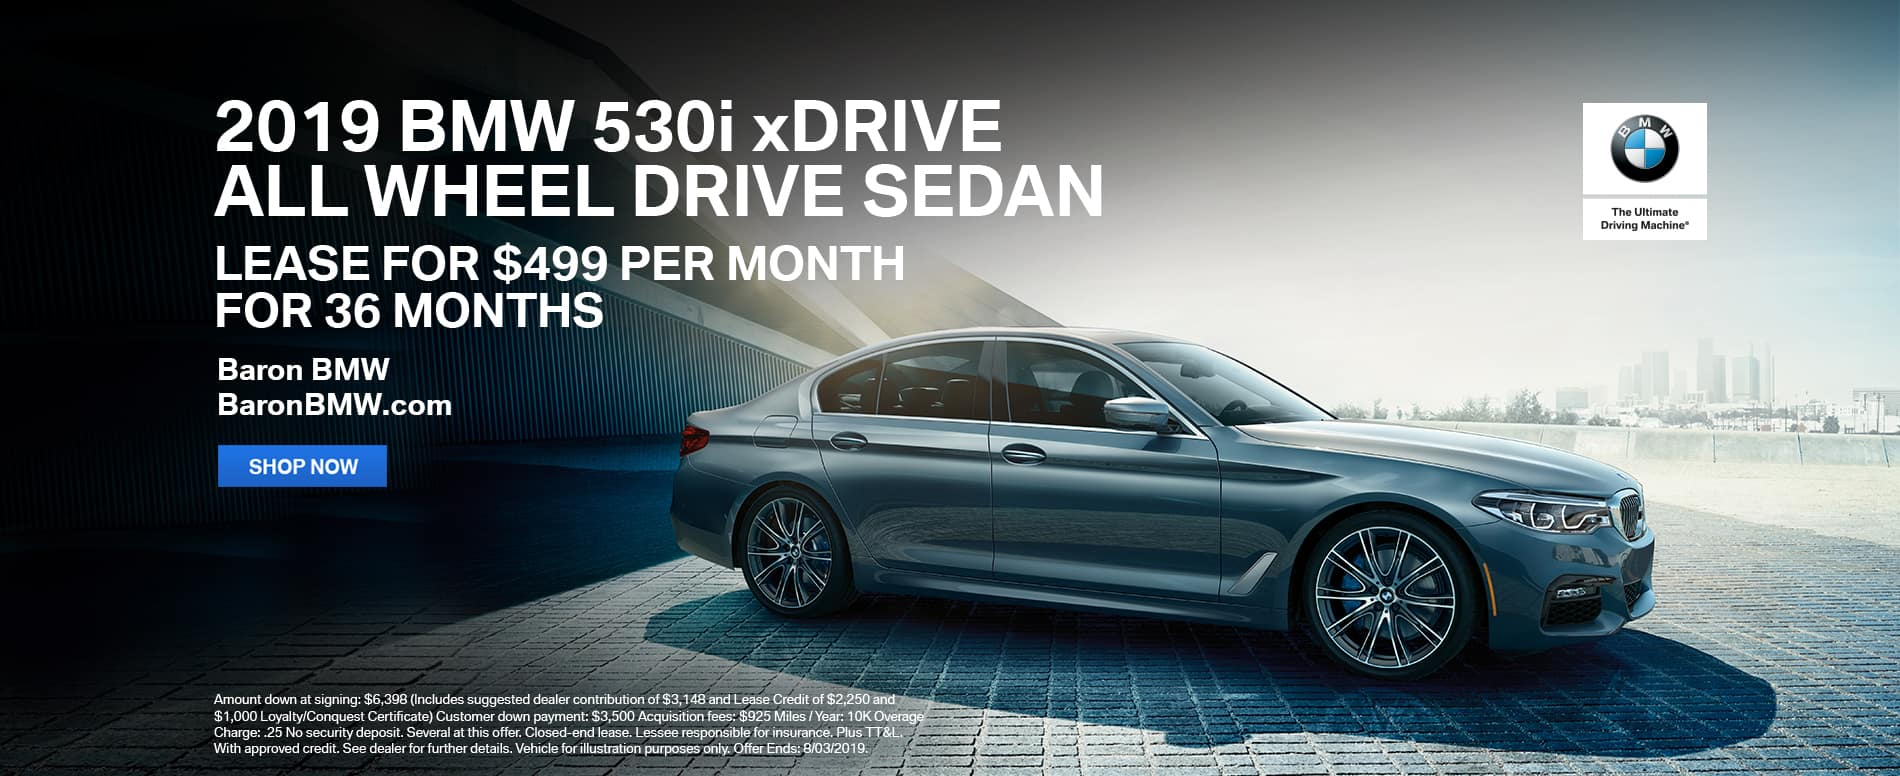 lease-2019-bmw-530i-xdrive-awd-sedan-baron